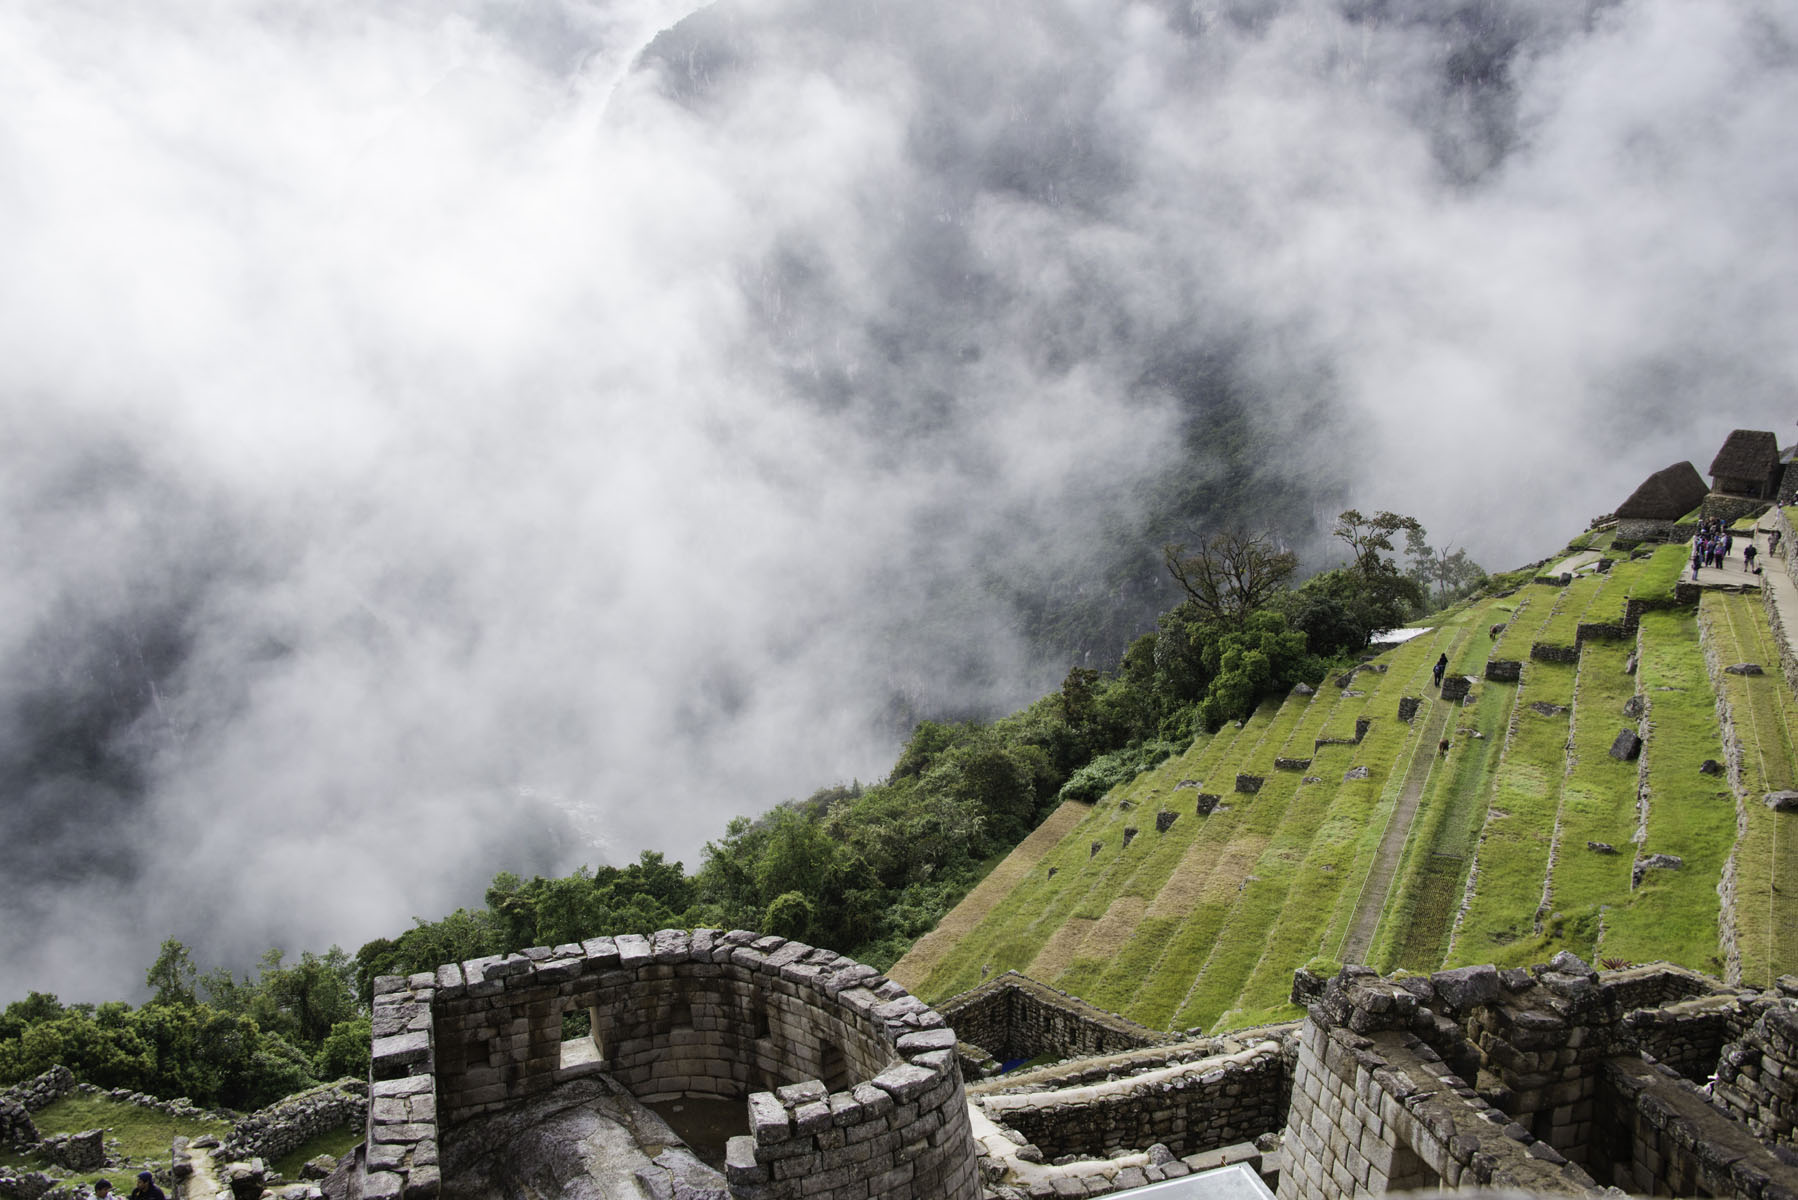 Buildings at Machu Picchu